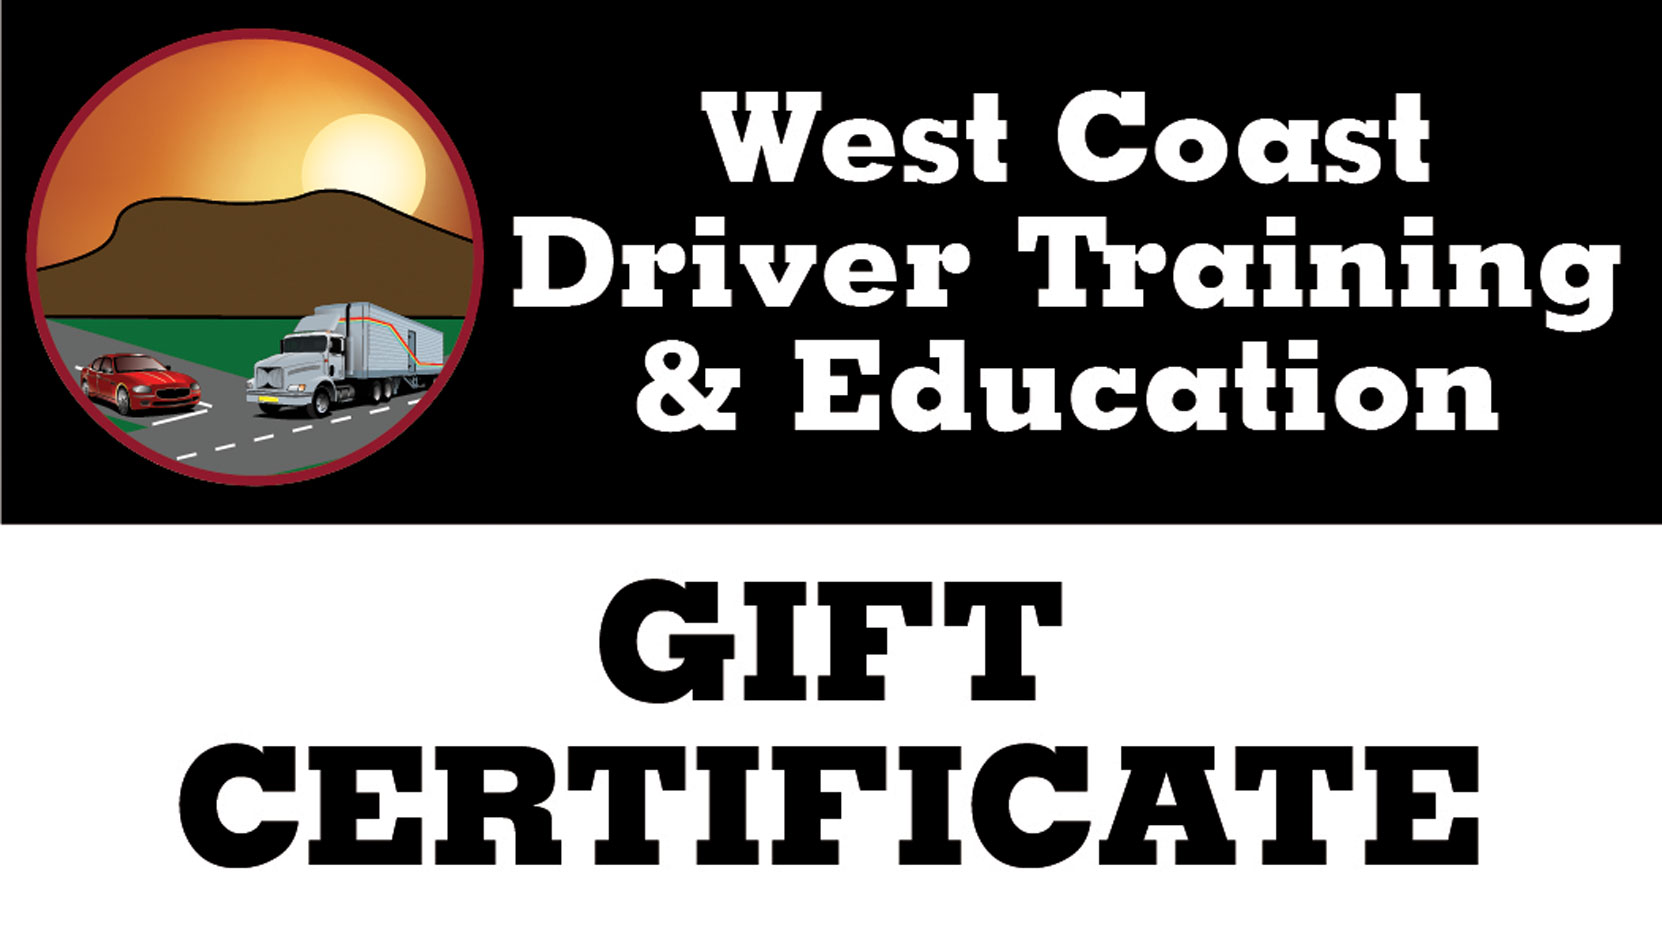 West Coast Driver Training & Education offers Gift Certificates